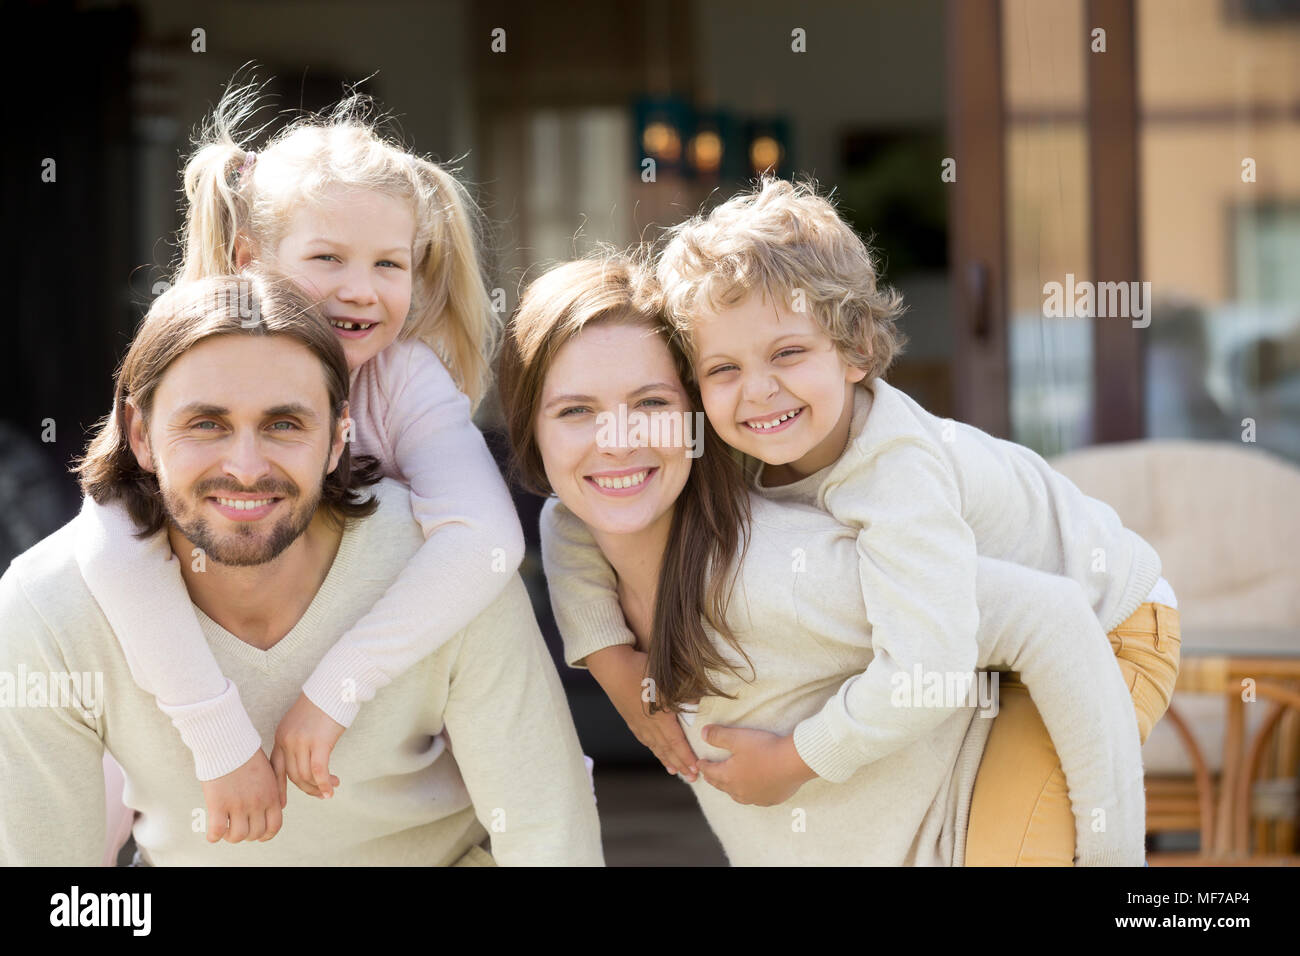 815e48719ce73 Happy parents piggybacking kids on house terrace looking at came - Stock  Image